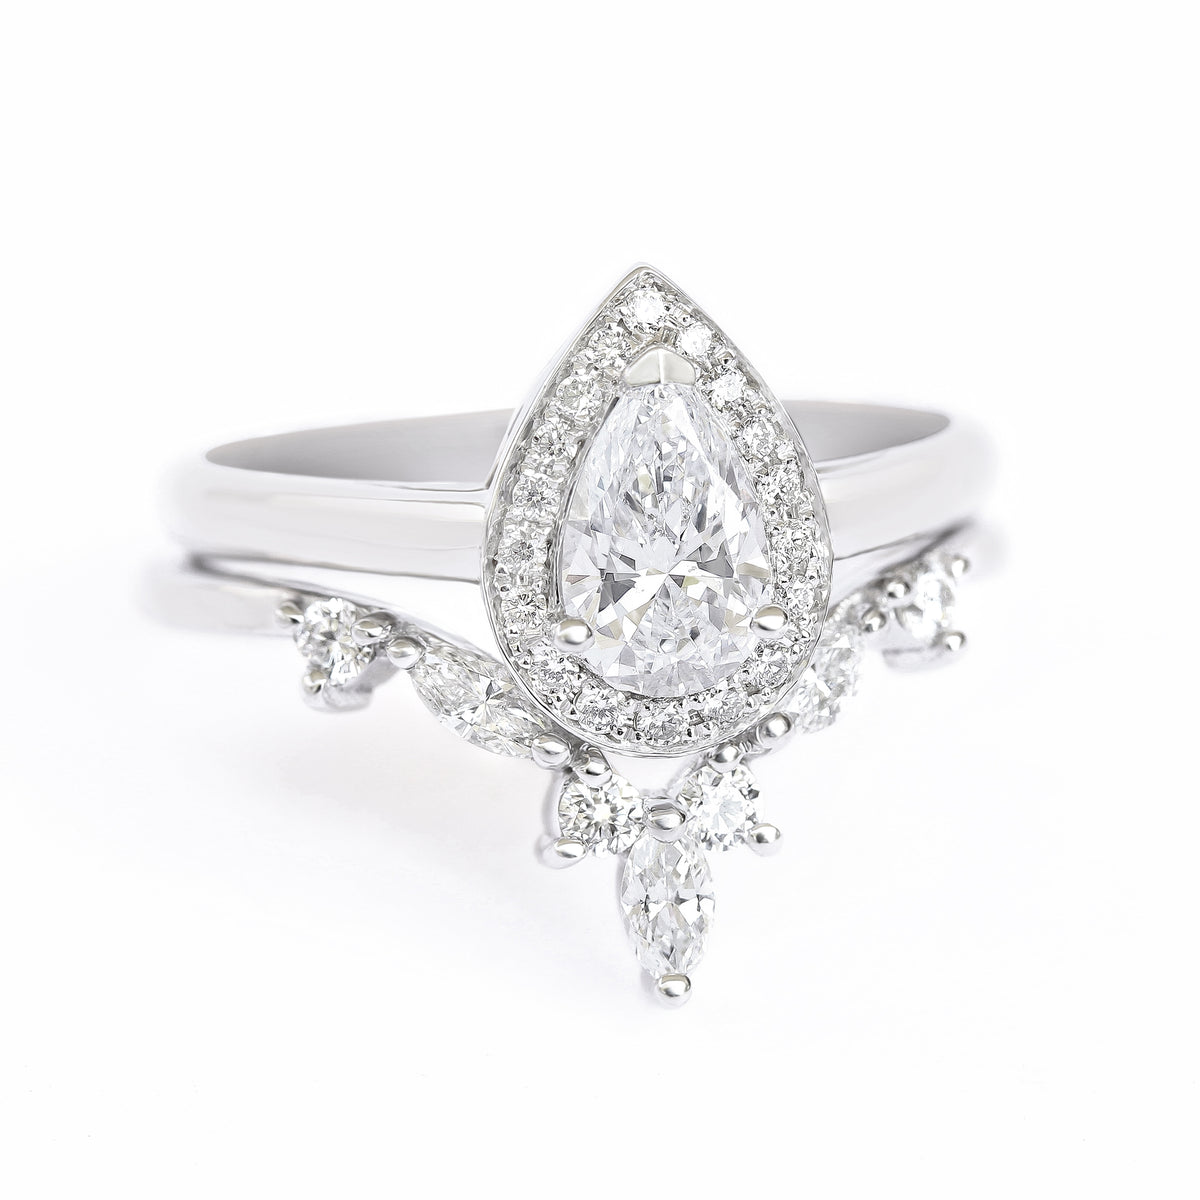 258621d98e808 Pear diamond halo With Hermes Nesting Ring, bridal rings set